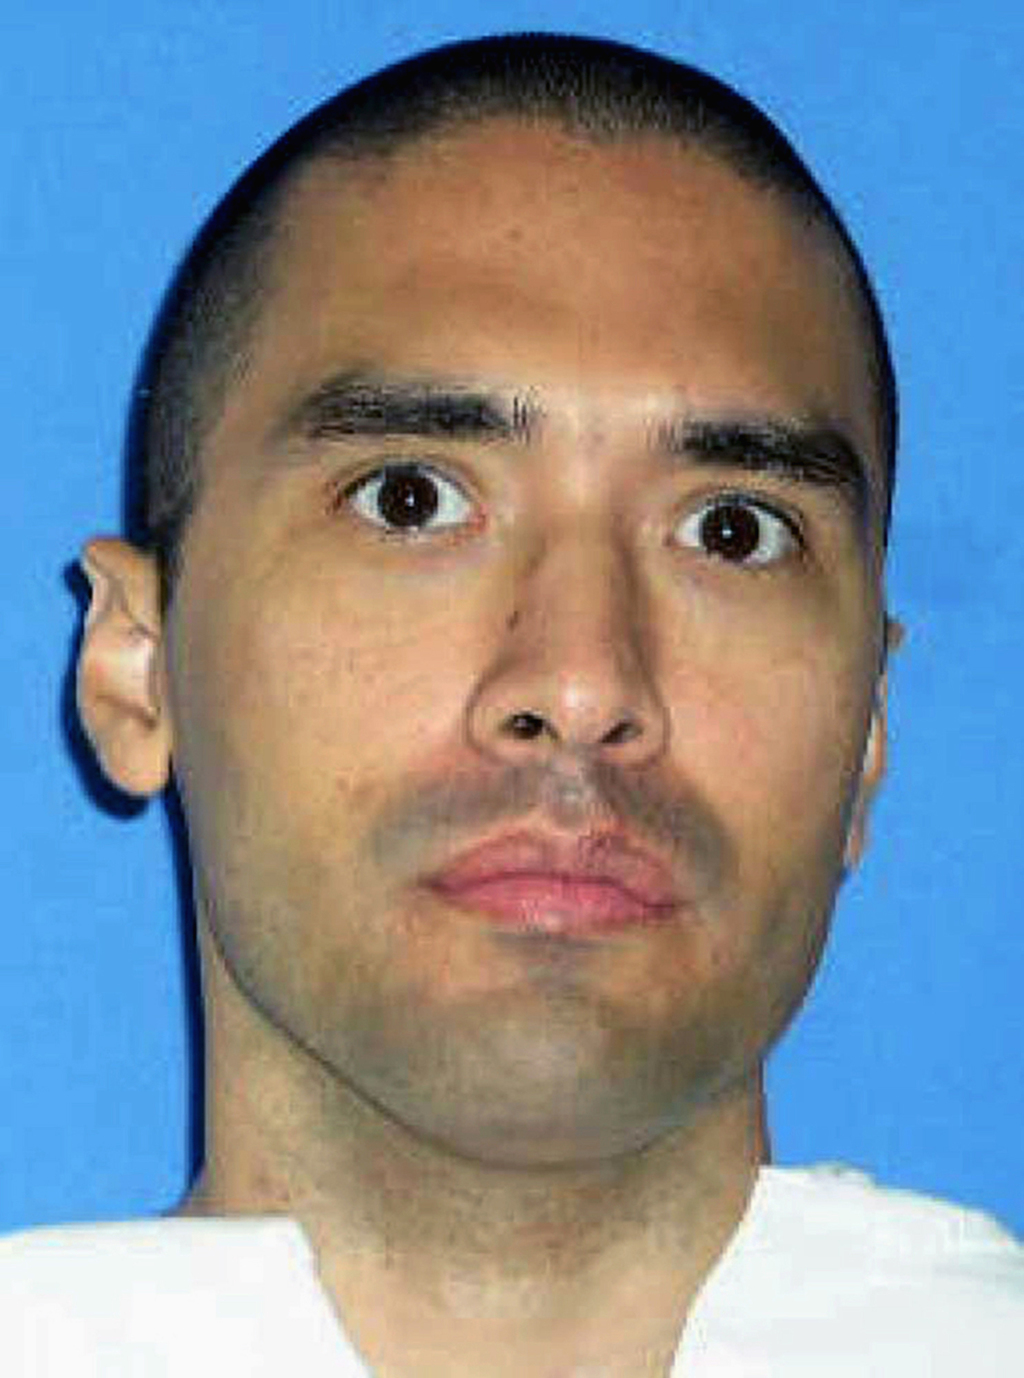 FILE - This undated file photo released by the Texas Department of Criminal Justice shows death row inmate Rolando Ruiz. Ruiz is schedu...